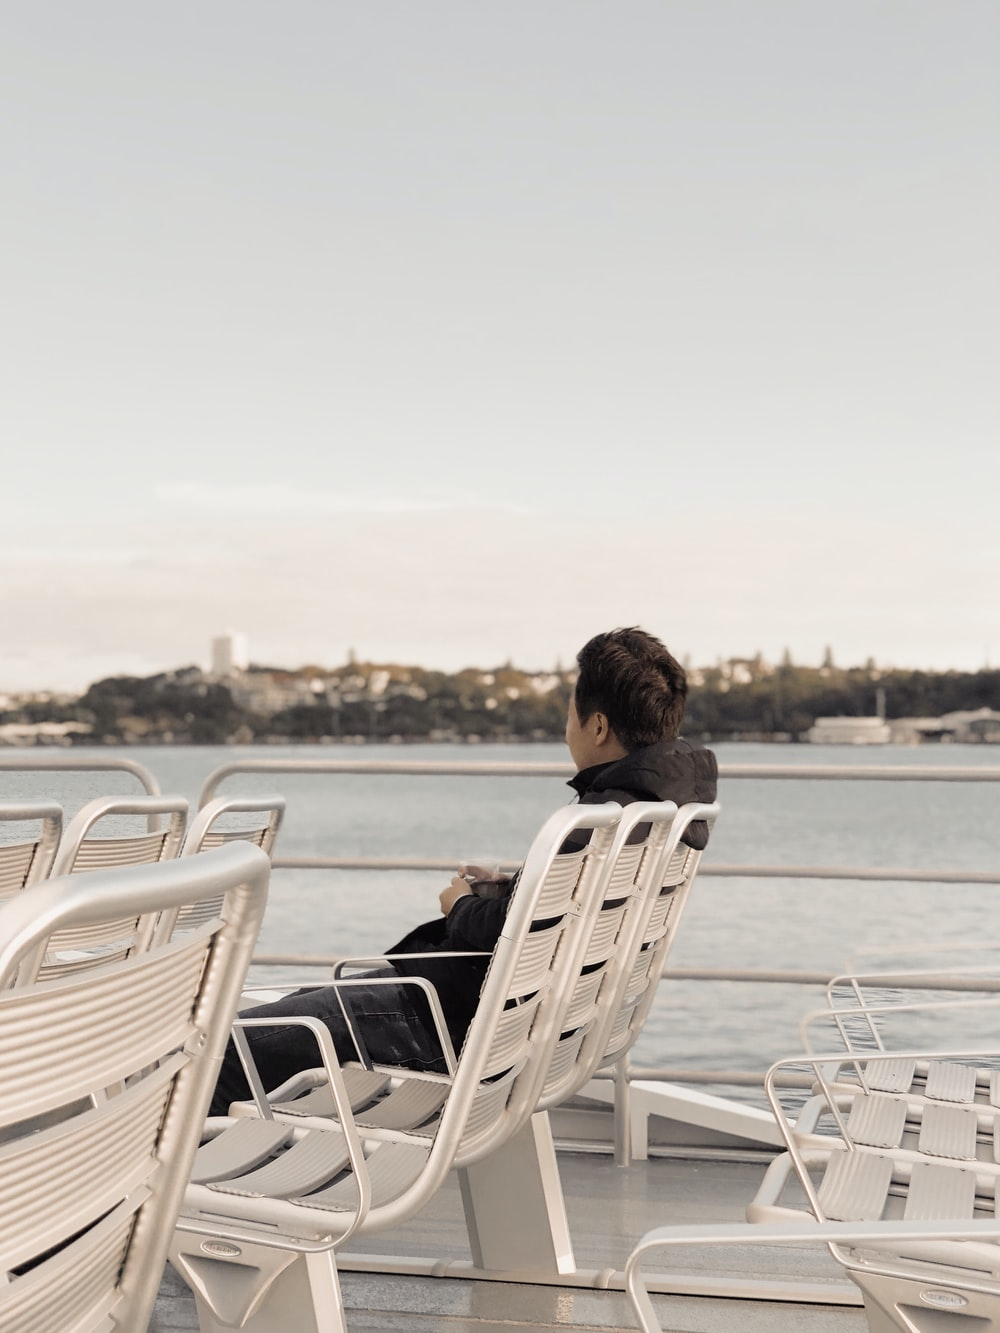 man sitting on chair under cloudy skies